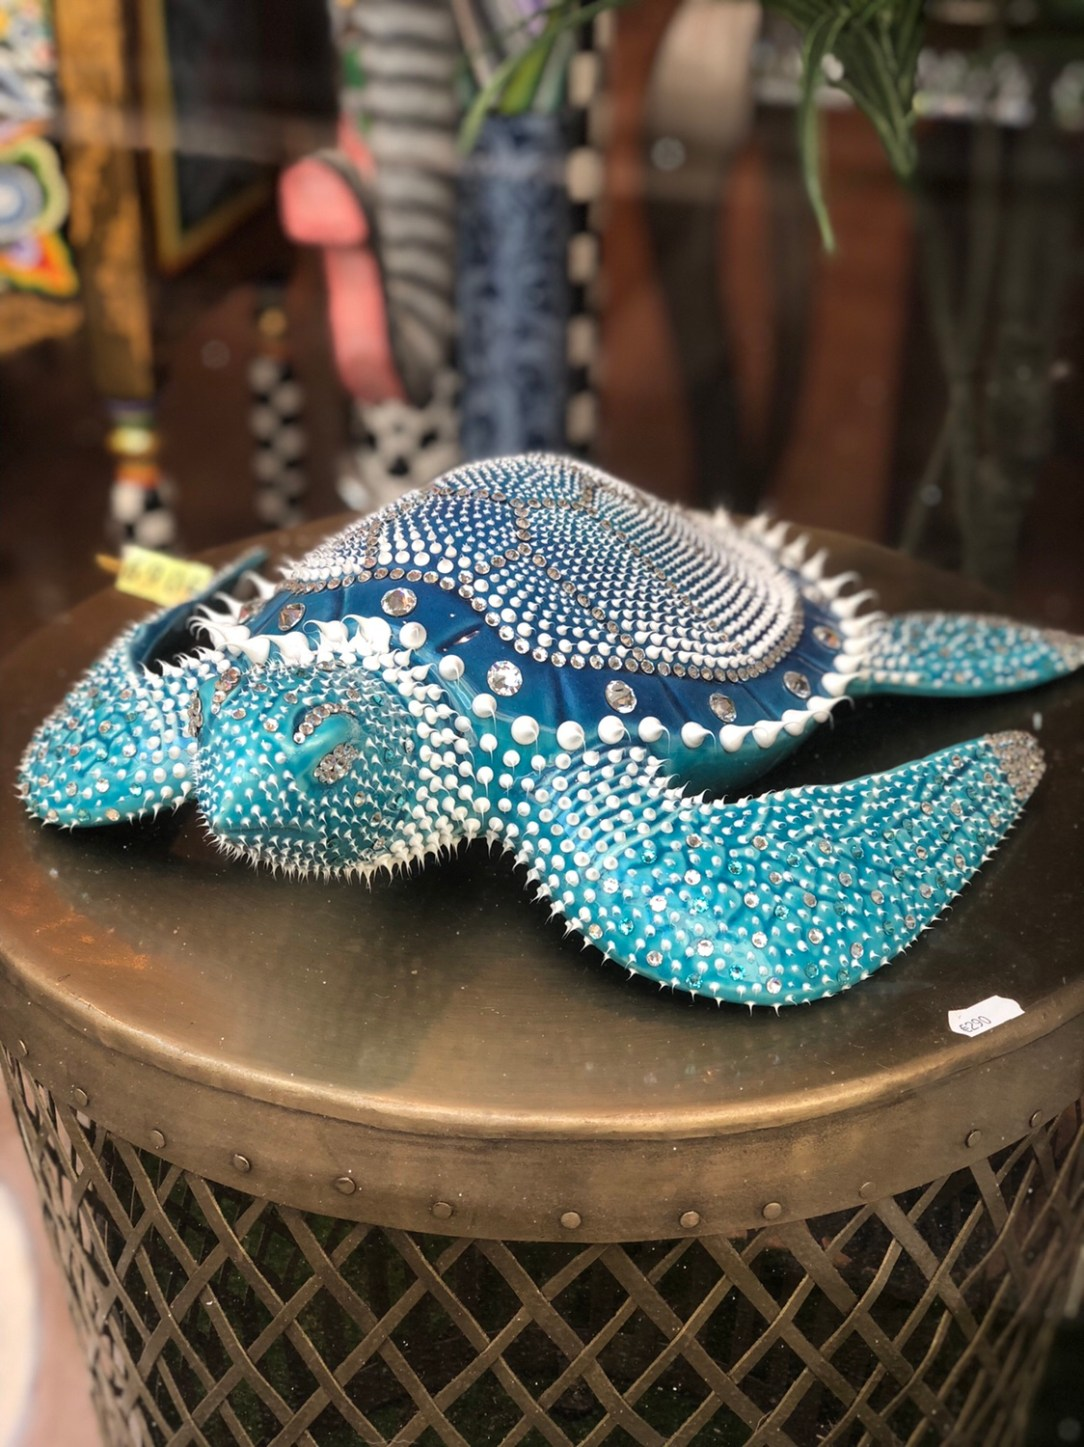 Themouse, 50 ans, Quinqua, eev, humeur, dream of the blue turtle, tortue, antibes